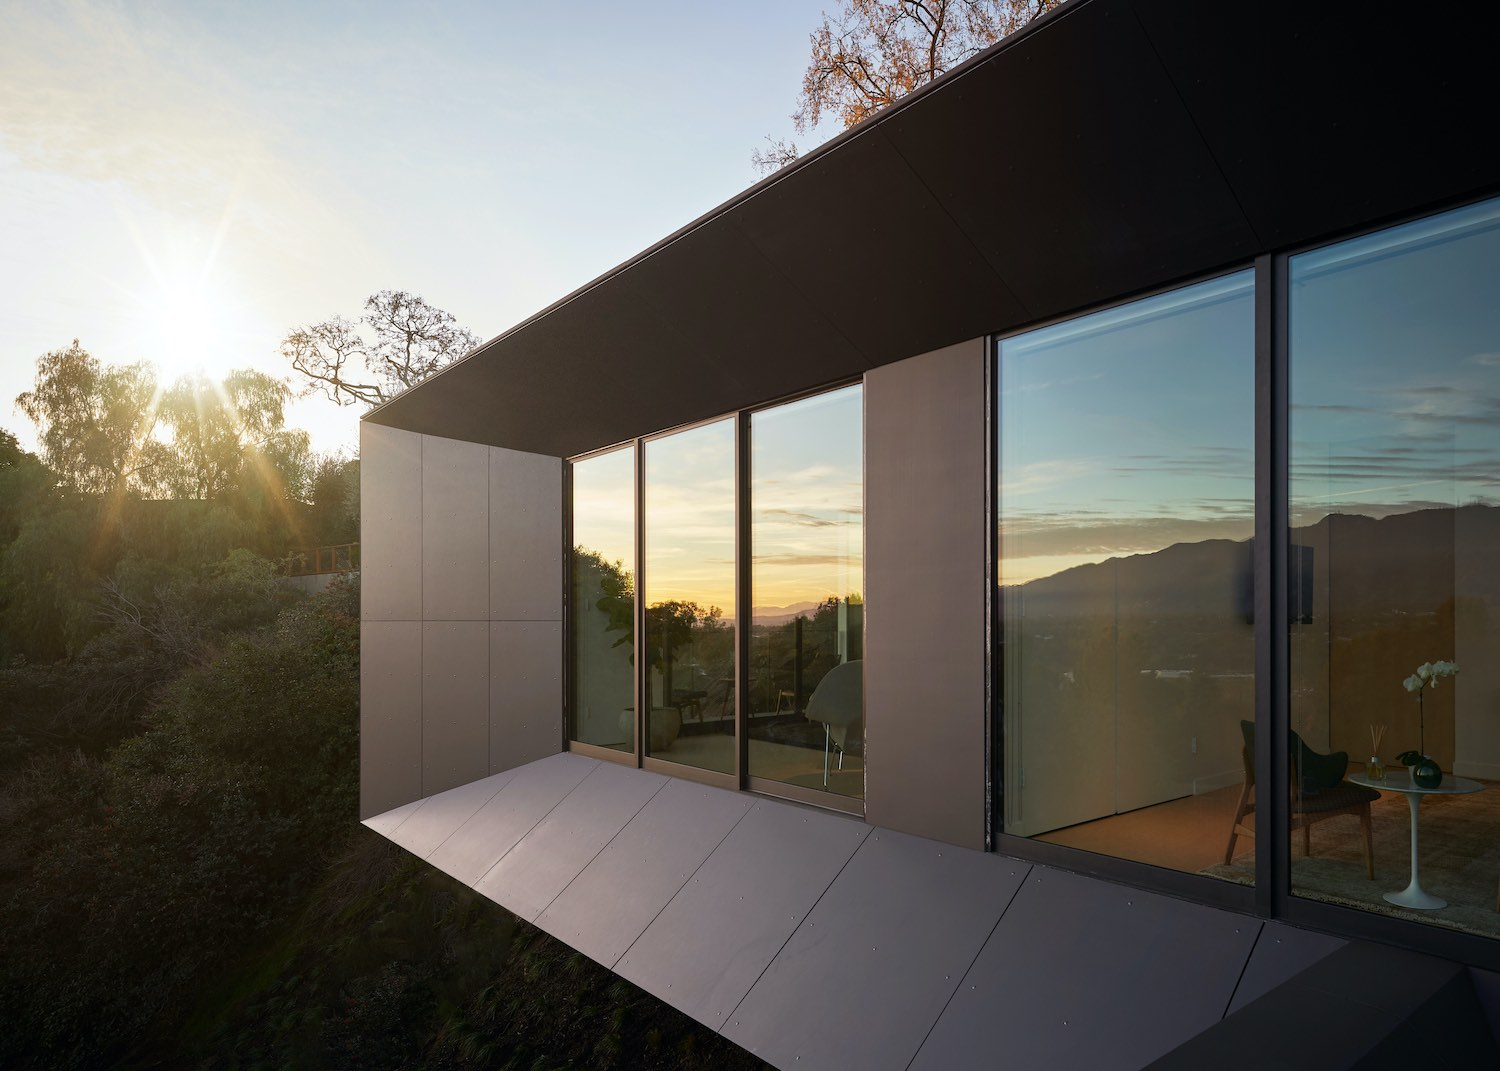 reflection of the sunset and trees on the window of the house